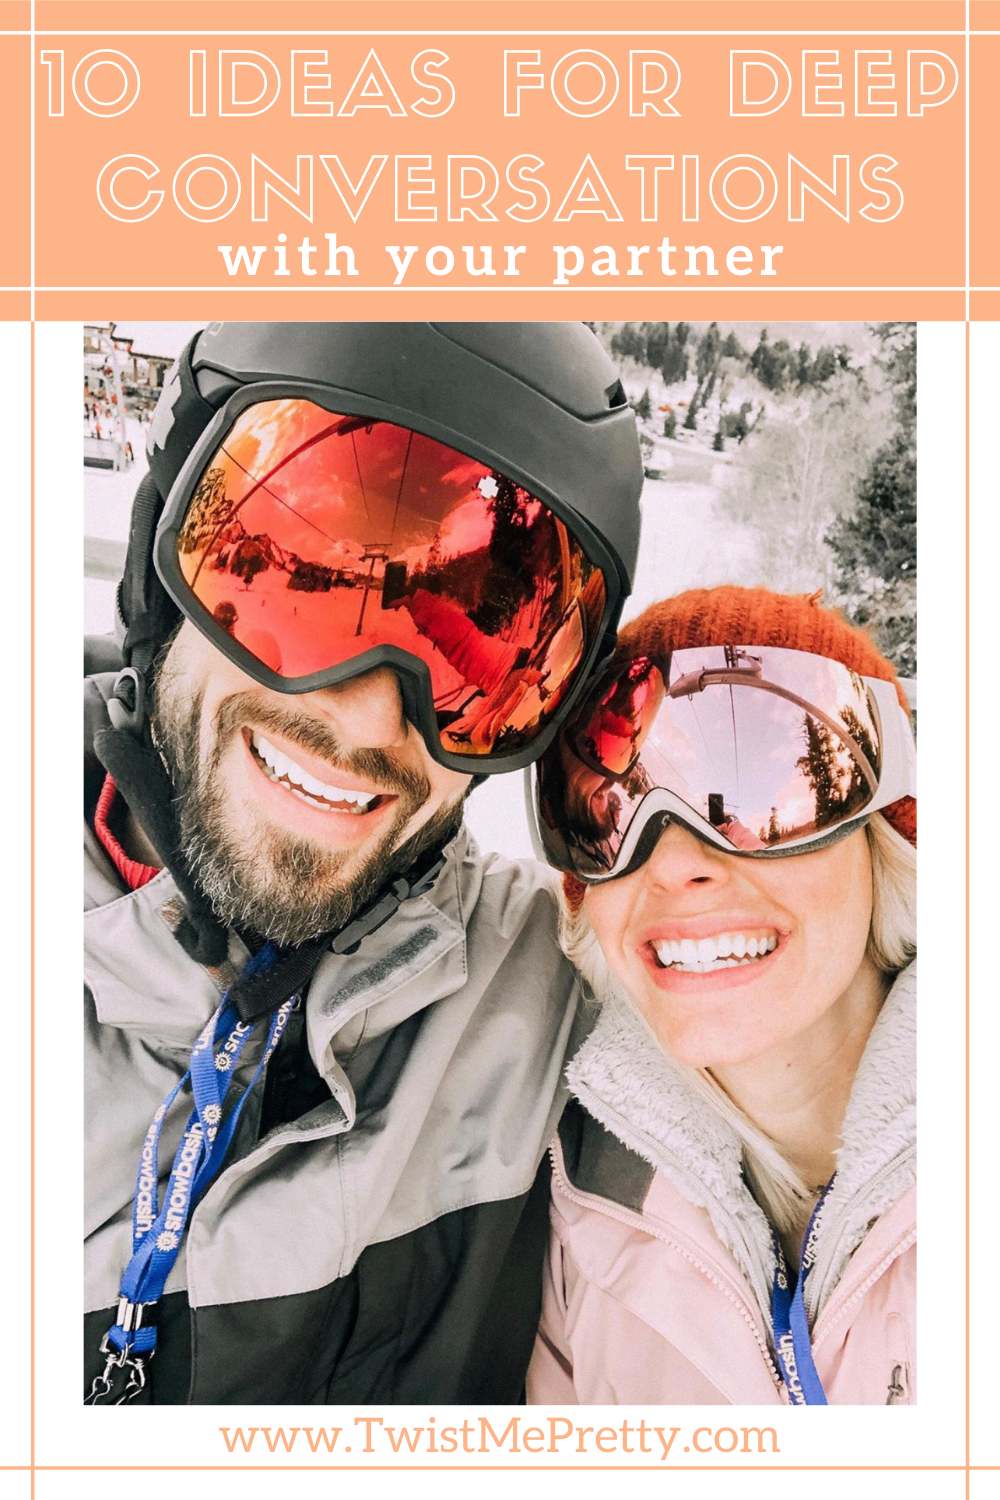 10 ideas for deep conversations with your partner. www.twistmepretty.com